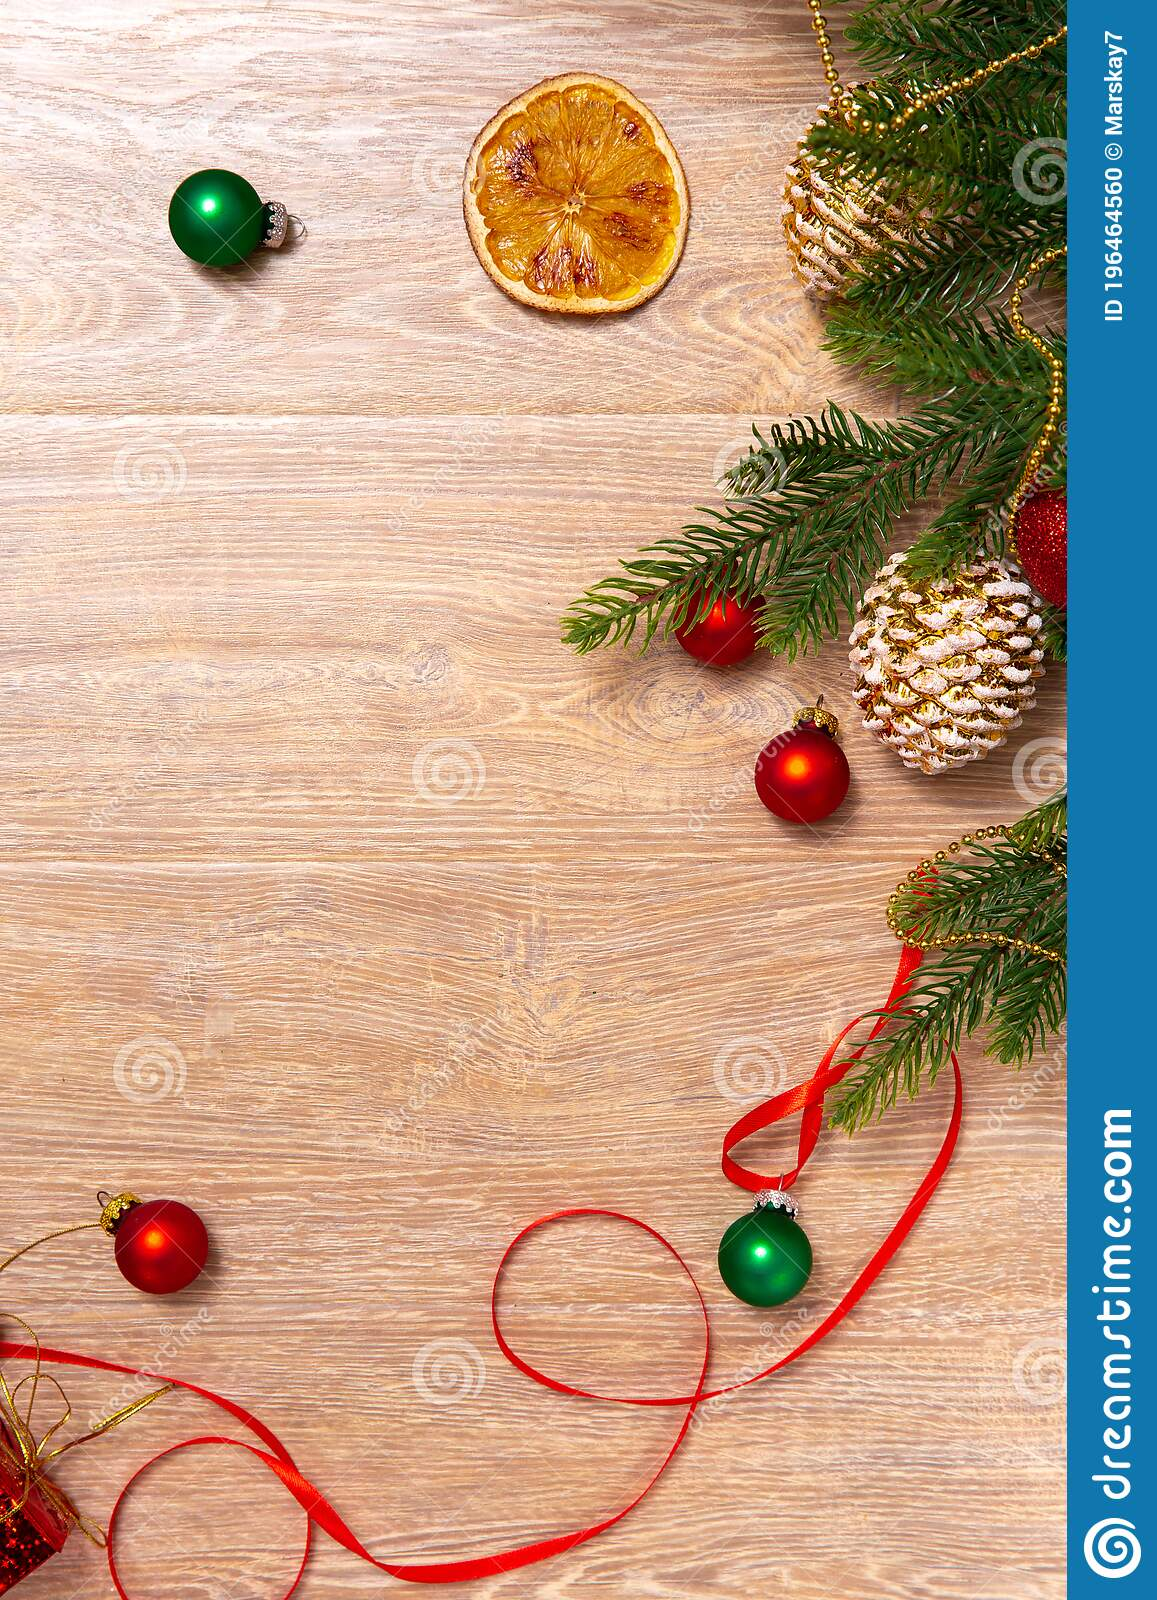 Xmas Banner With Cone Oranges Tape Beads And Christmas Tree On Wooden Background Copyspace New Year Top View Stock Photo Image Of Invitation Ornament 196464560